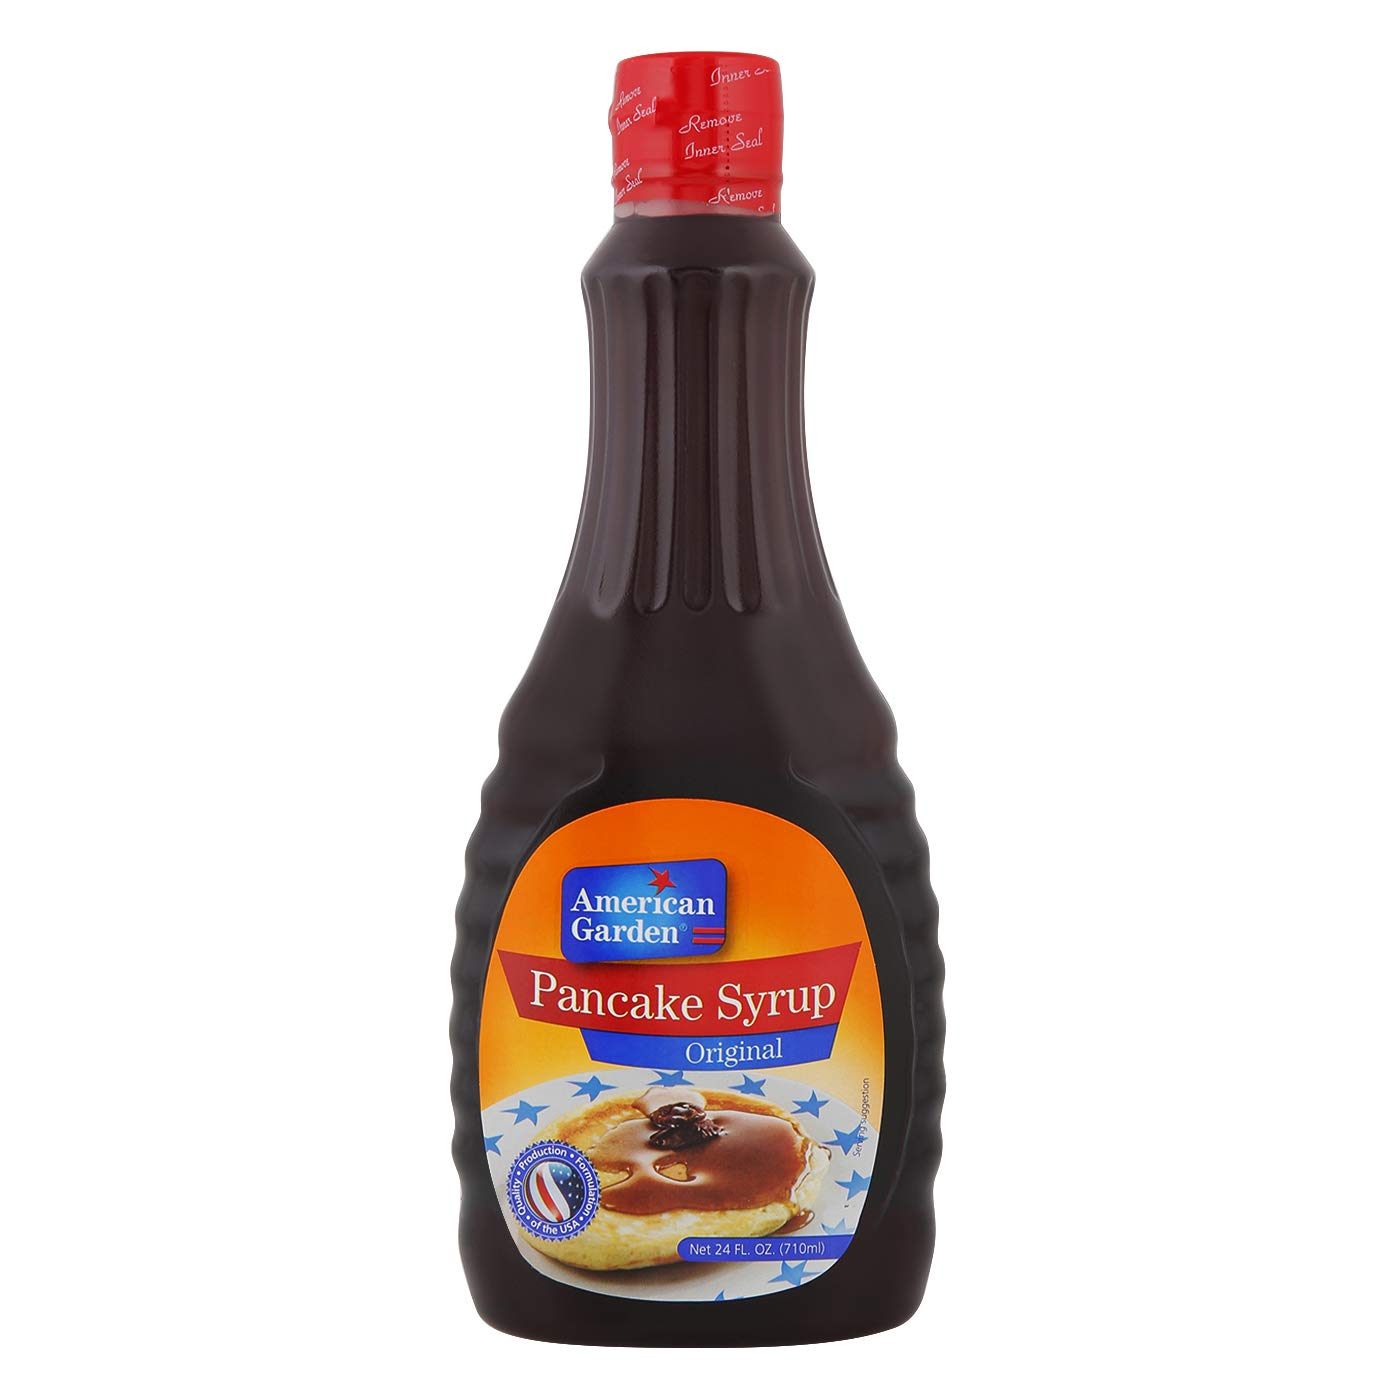 American Garden Pancake Syrup | Maple Syrup